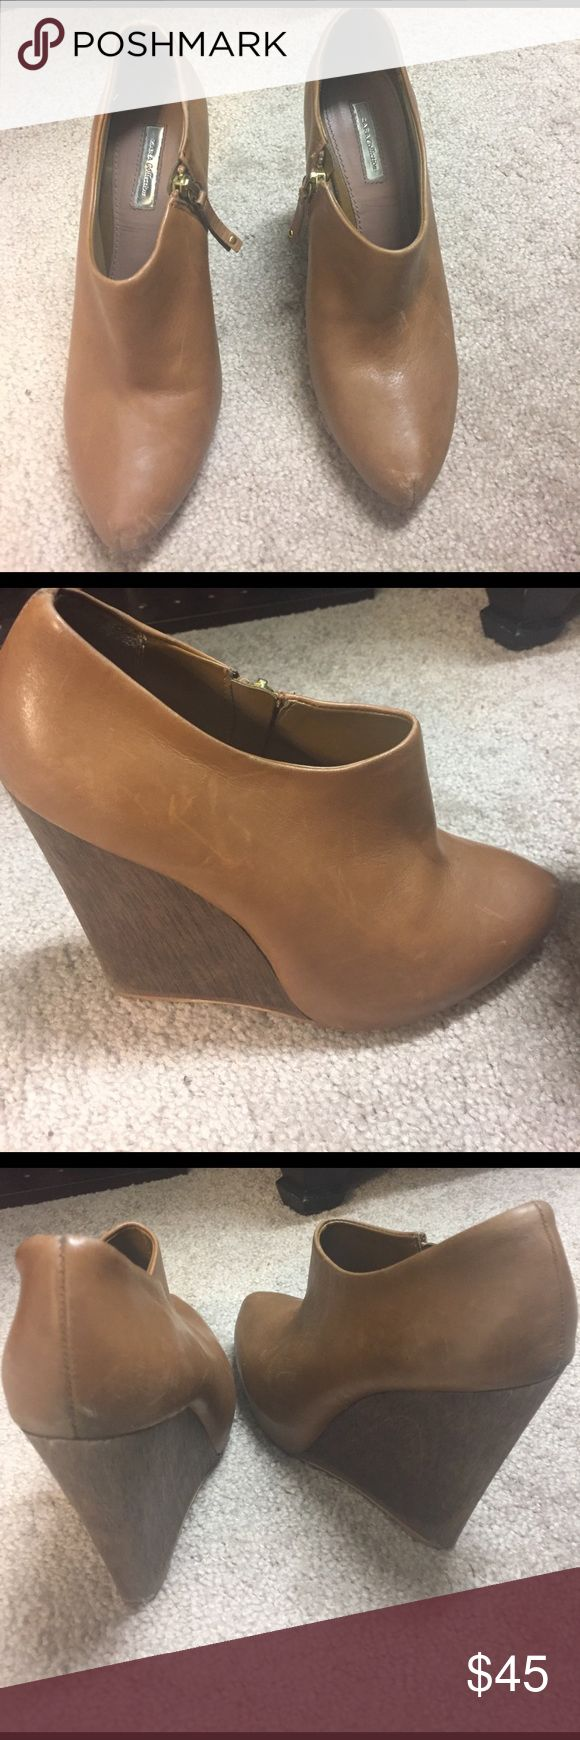 Zara Wedge Ankle Boots Adorable leather ankle boots in a camel leather with side zip and wooden heel Zara Shoes Ankle Boots & Booties